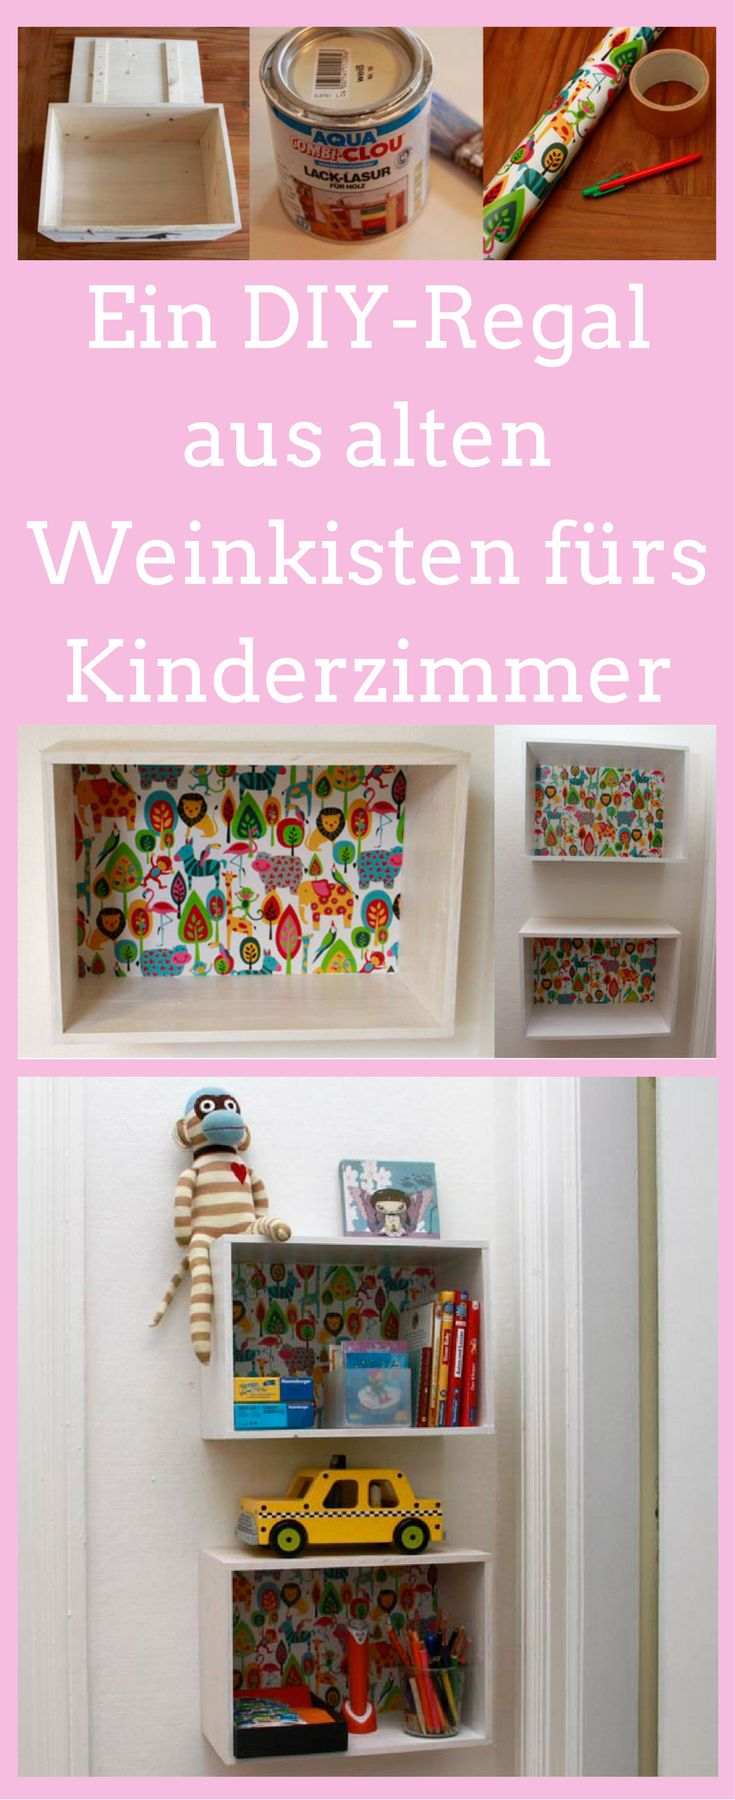 49 best Spielerisch Kinderzimmer einrichten! images on Pinterest ...